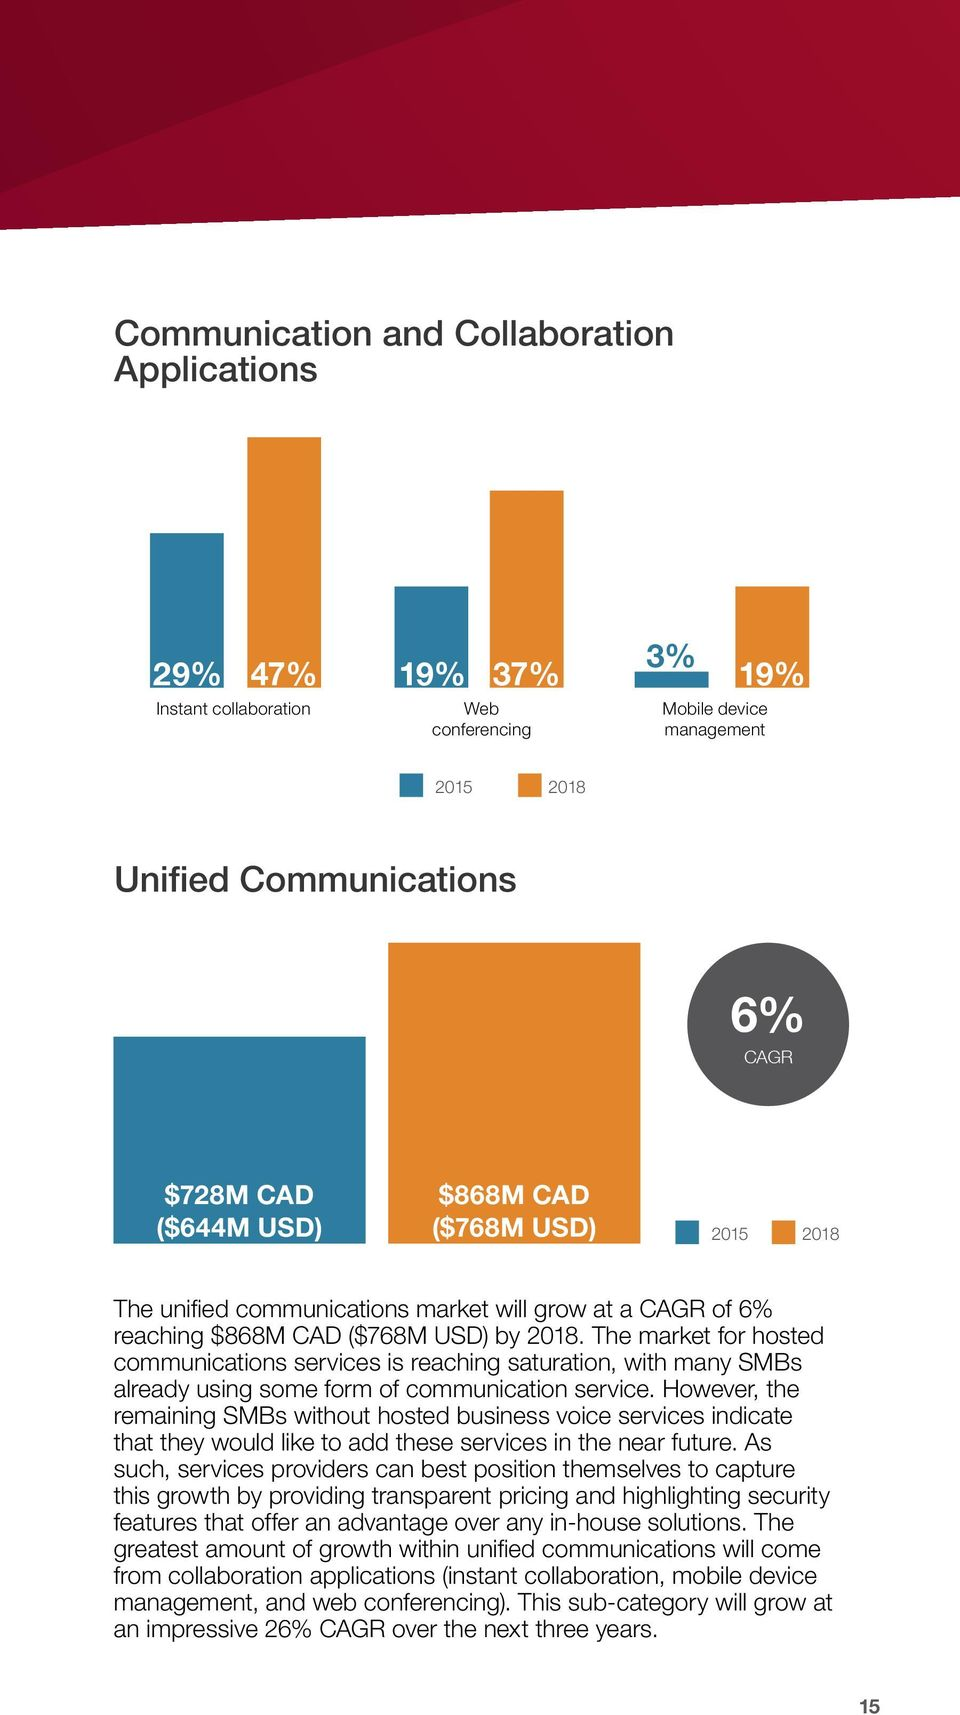 The market for hosted communications services is reaching saturation, with many SMBs already using some form of communication service.